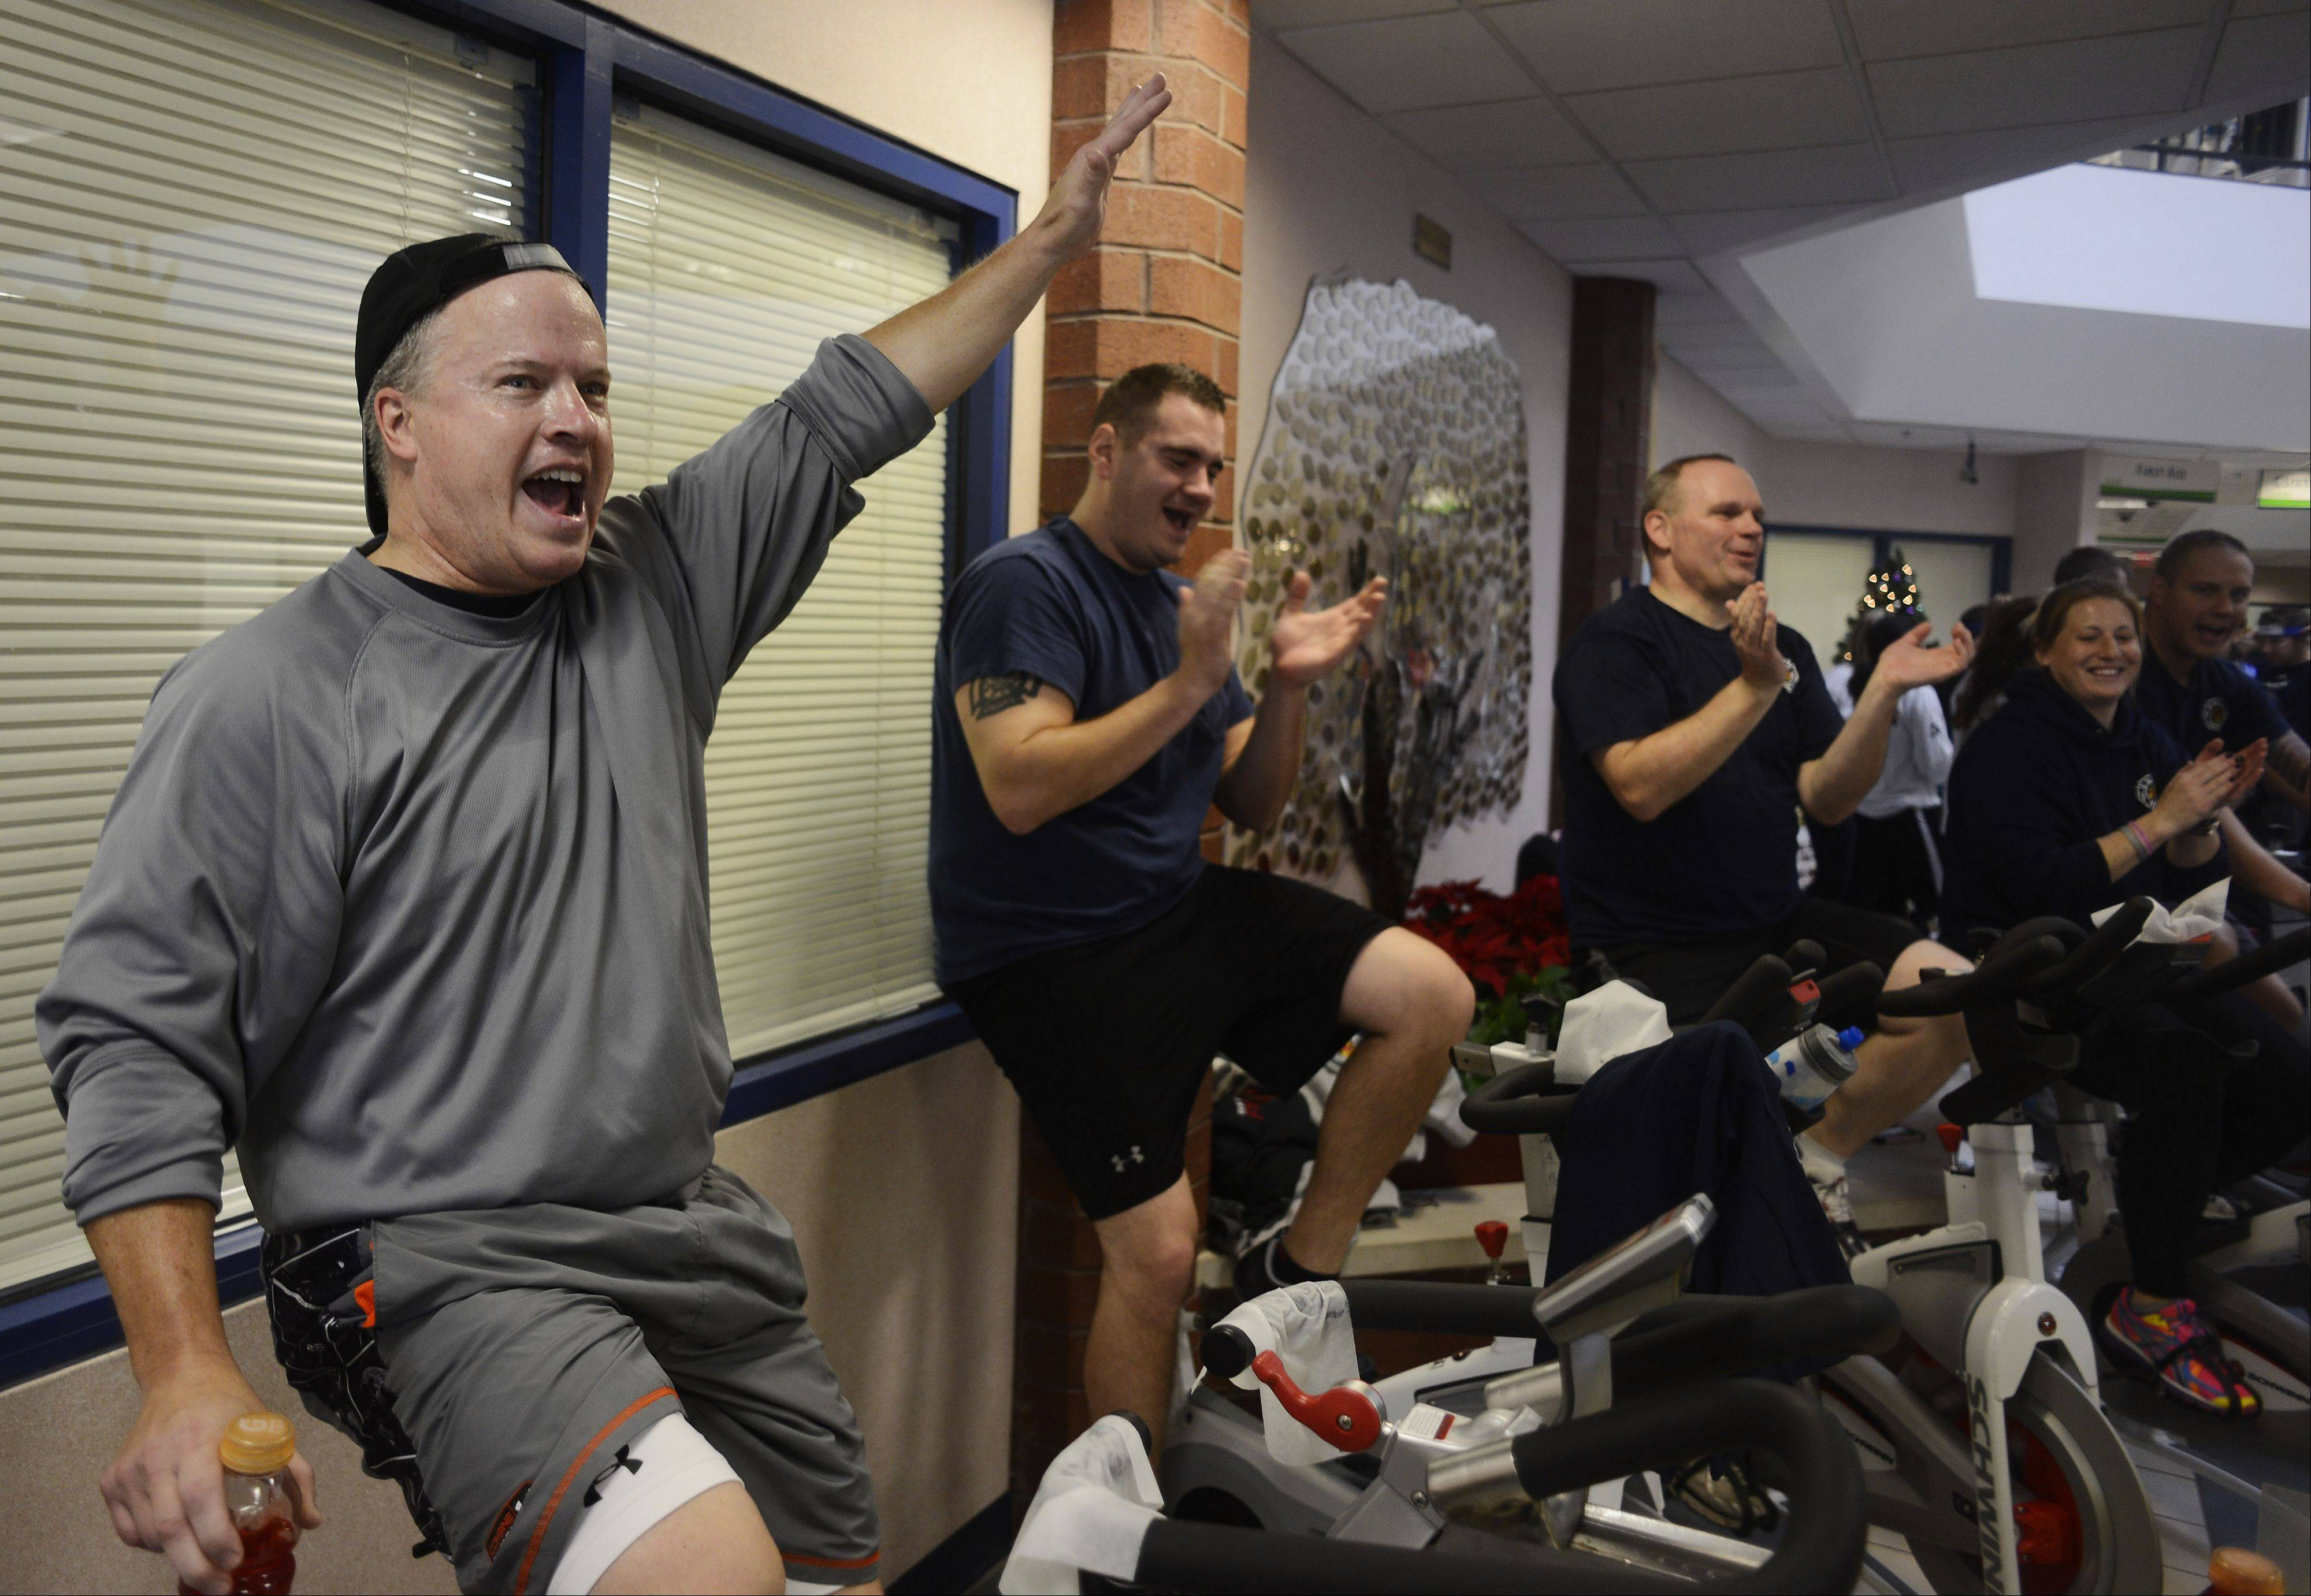 Local business owner Jim O'Malley lets out a cheer after a donor gave the final $10 needed for his group to stop riding Saturday during the Elk Grove Parks Foundation Spin-O-Thon at The Pavilion in Elk Grove Village.